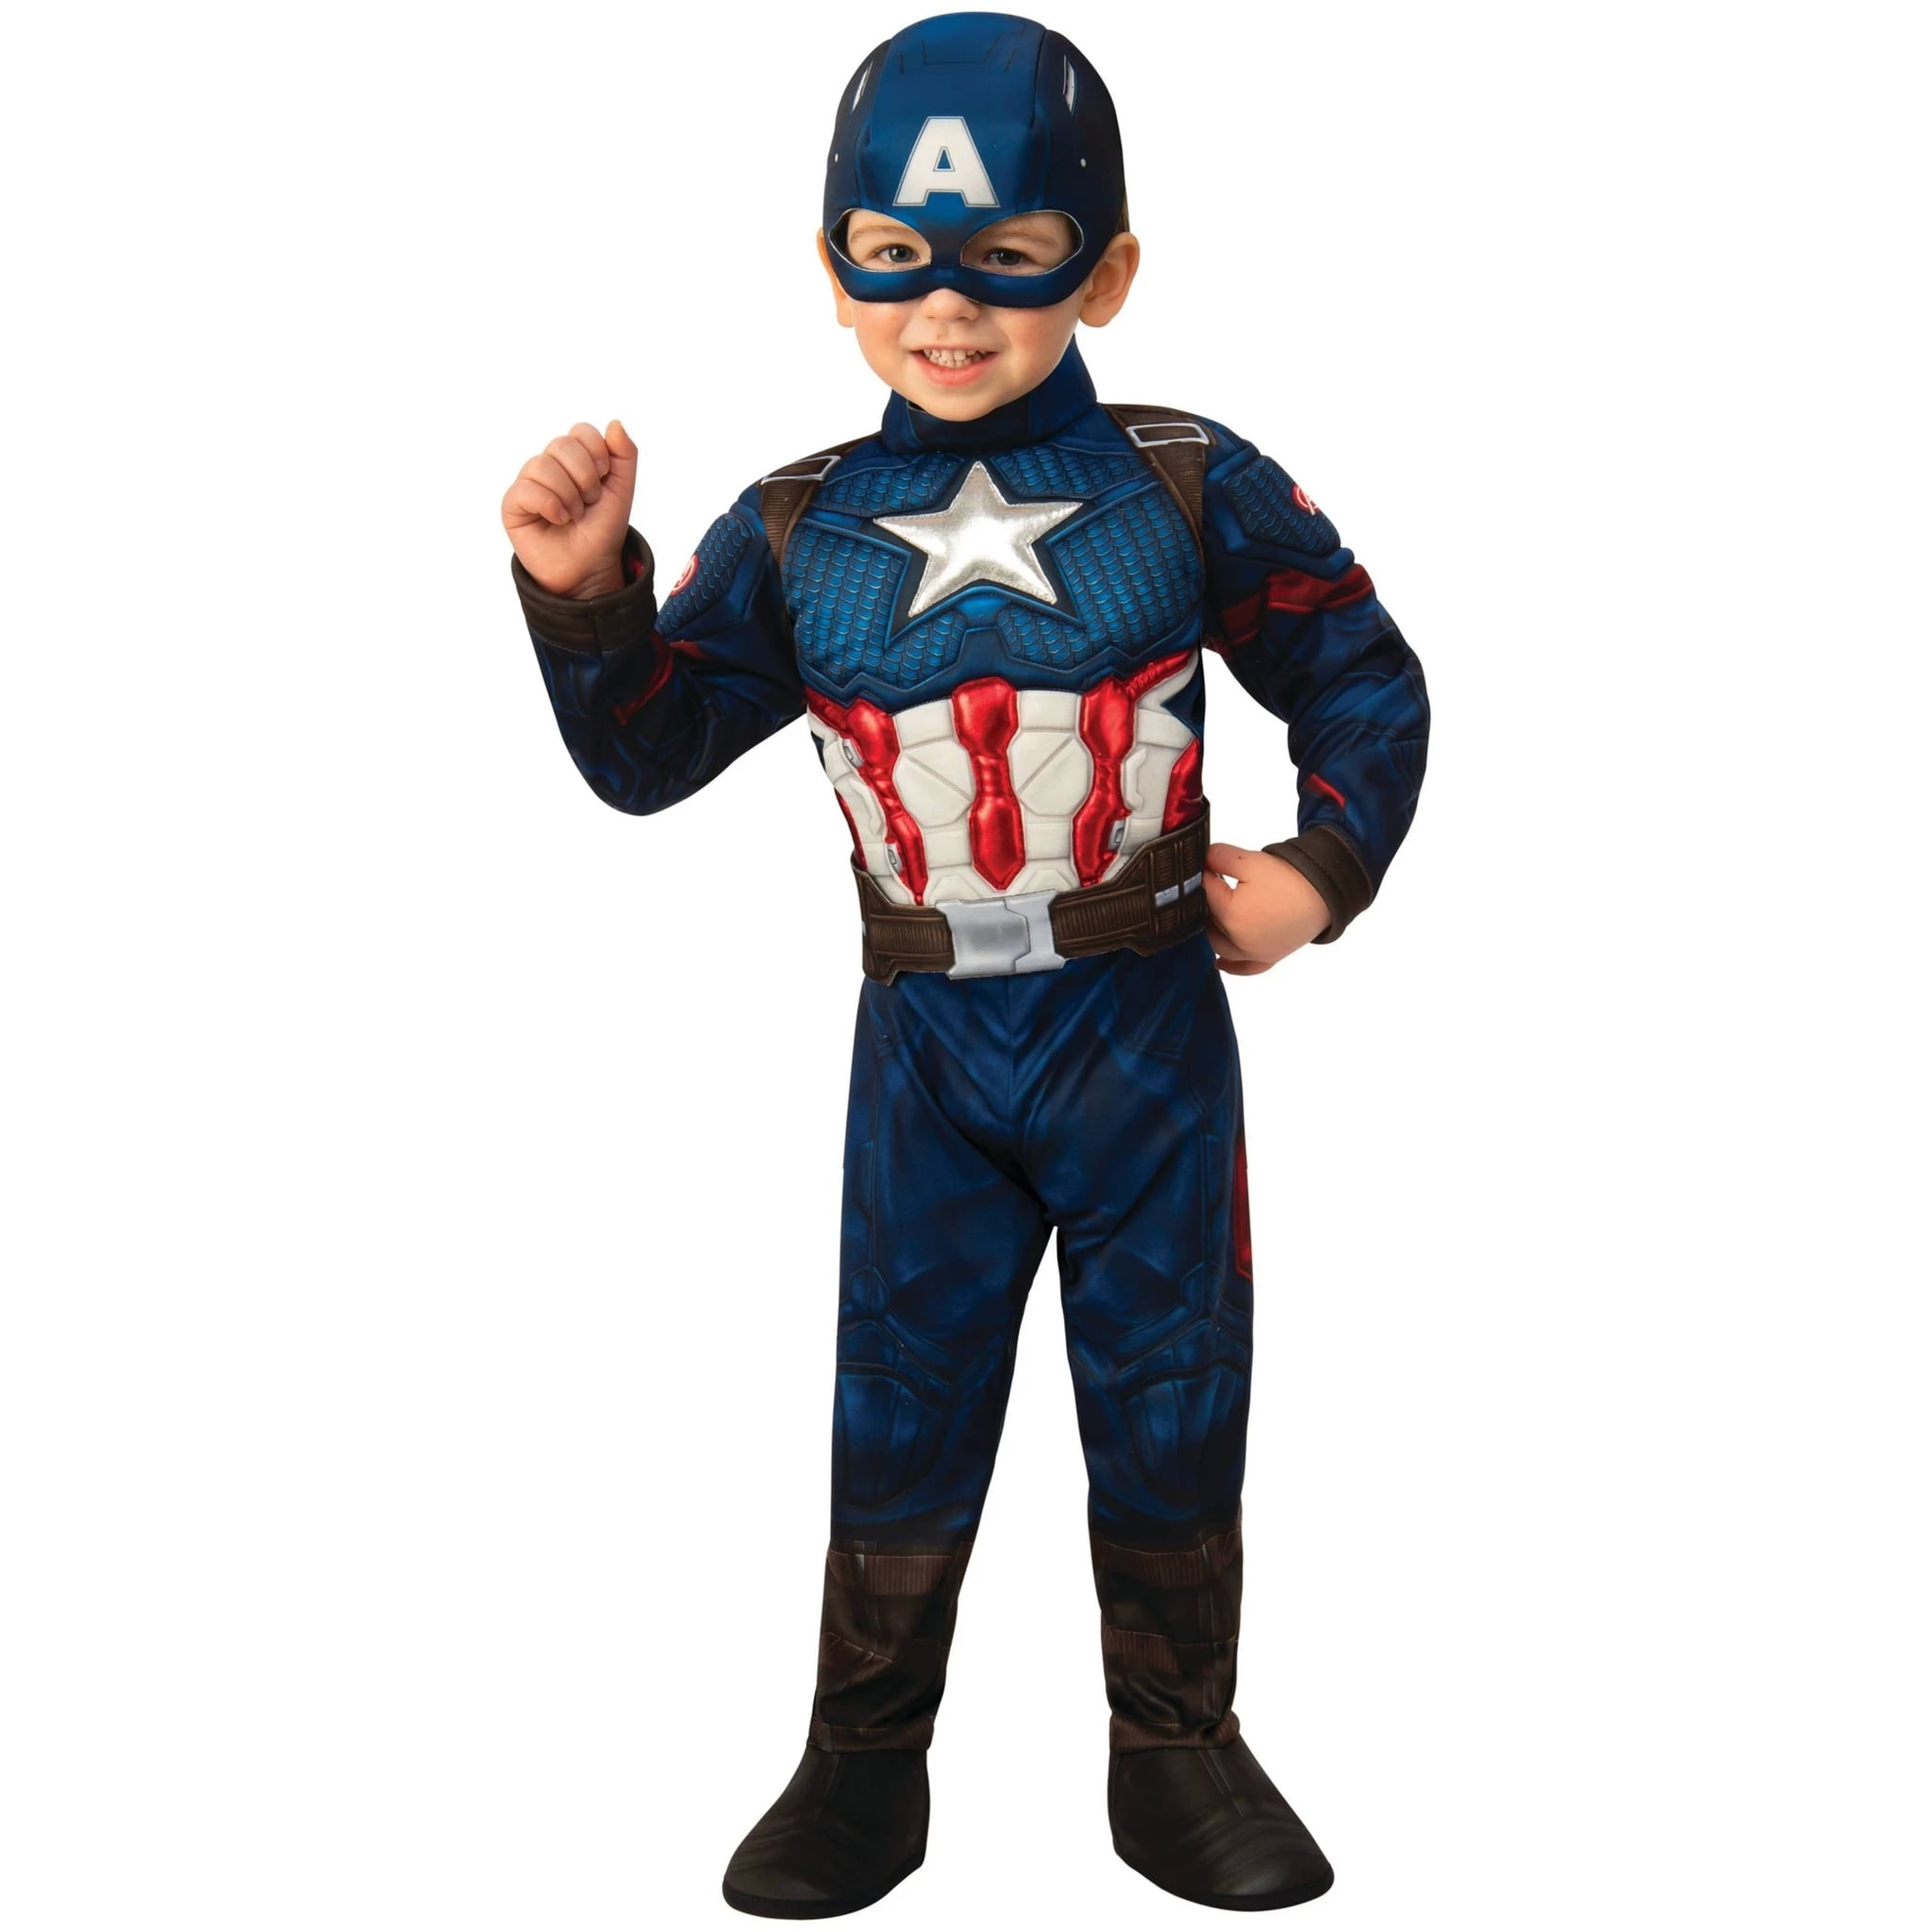 Toddler Boys Marvel Captain America Deluxe Muscle Halloween Costume The 100 Cutest Spookiest Halloween Costumes For Babies And Toddlers Popsugar Family Photo 65 26 results for baby captain america costume. toddler boys marvel captain america